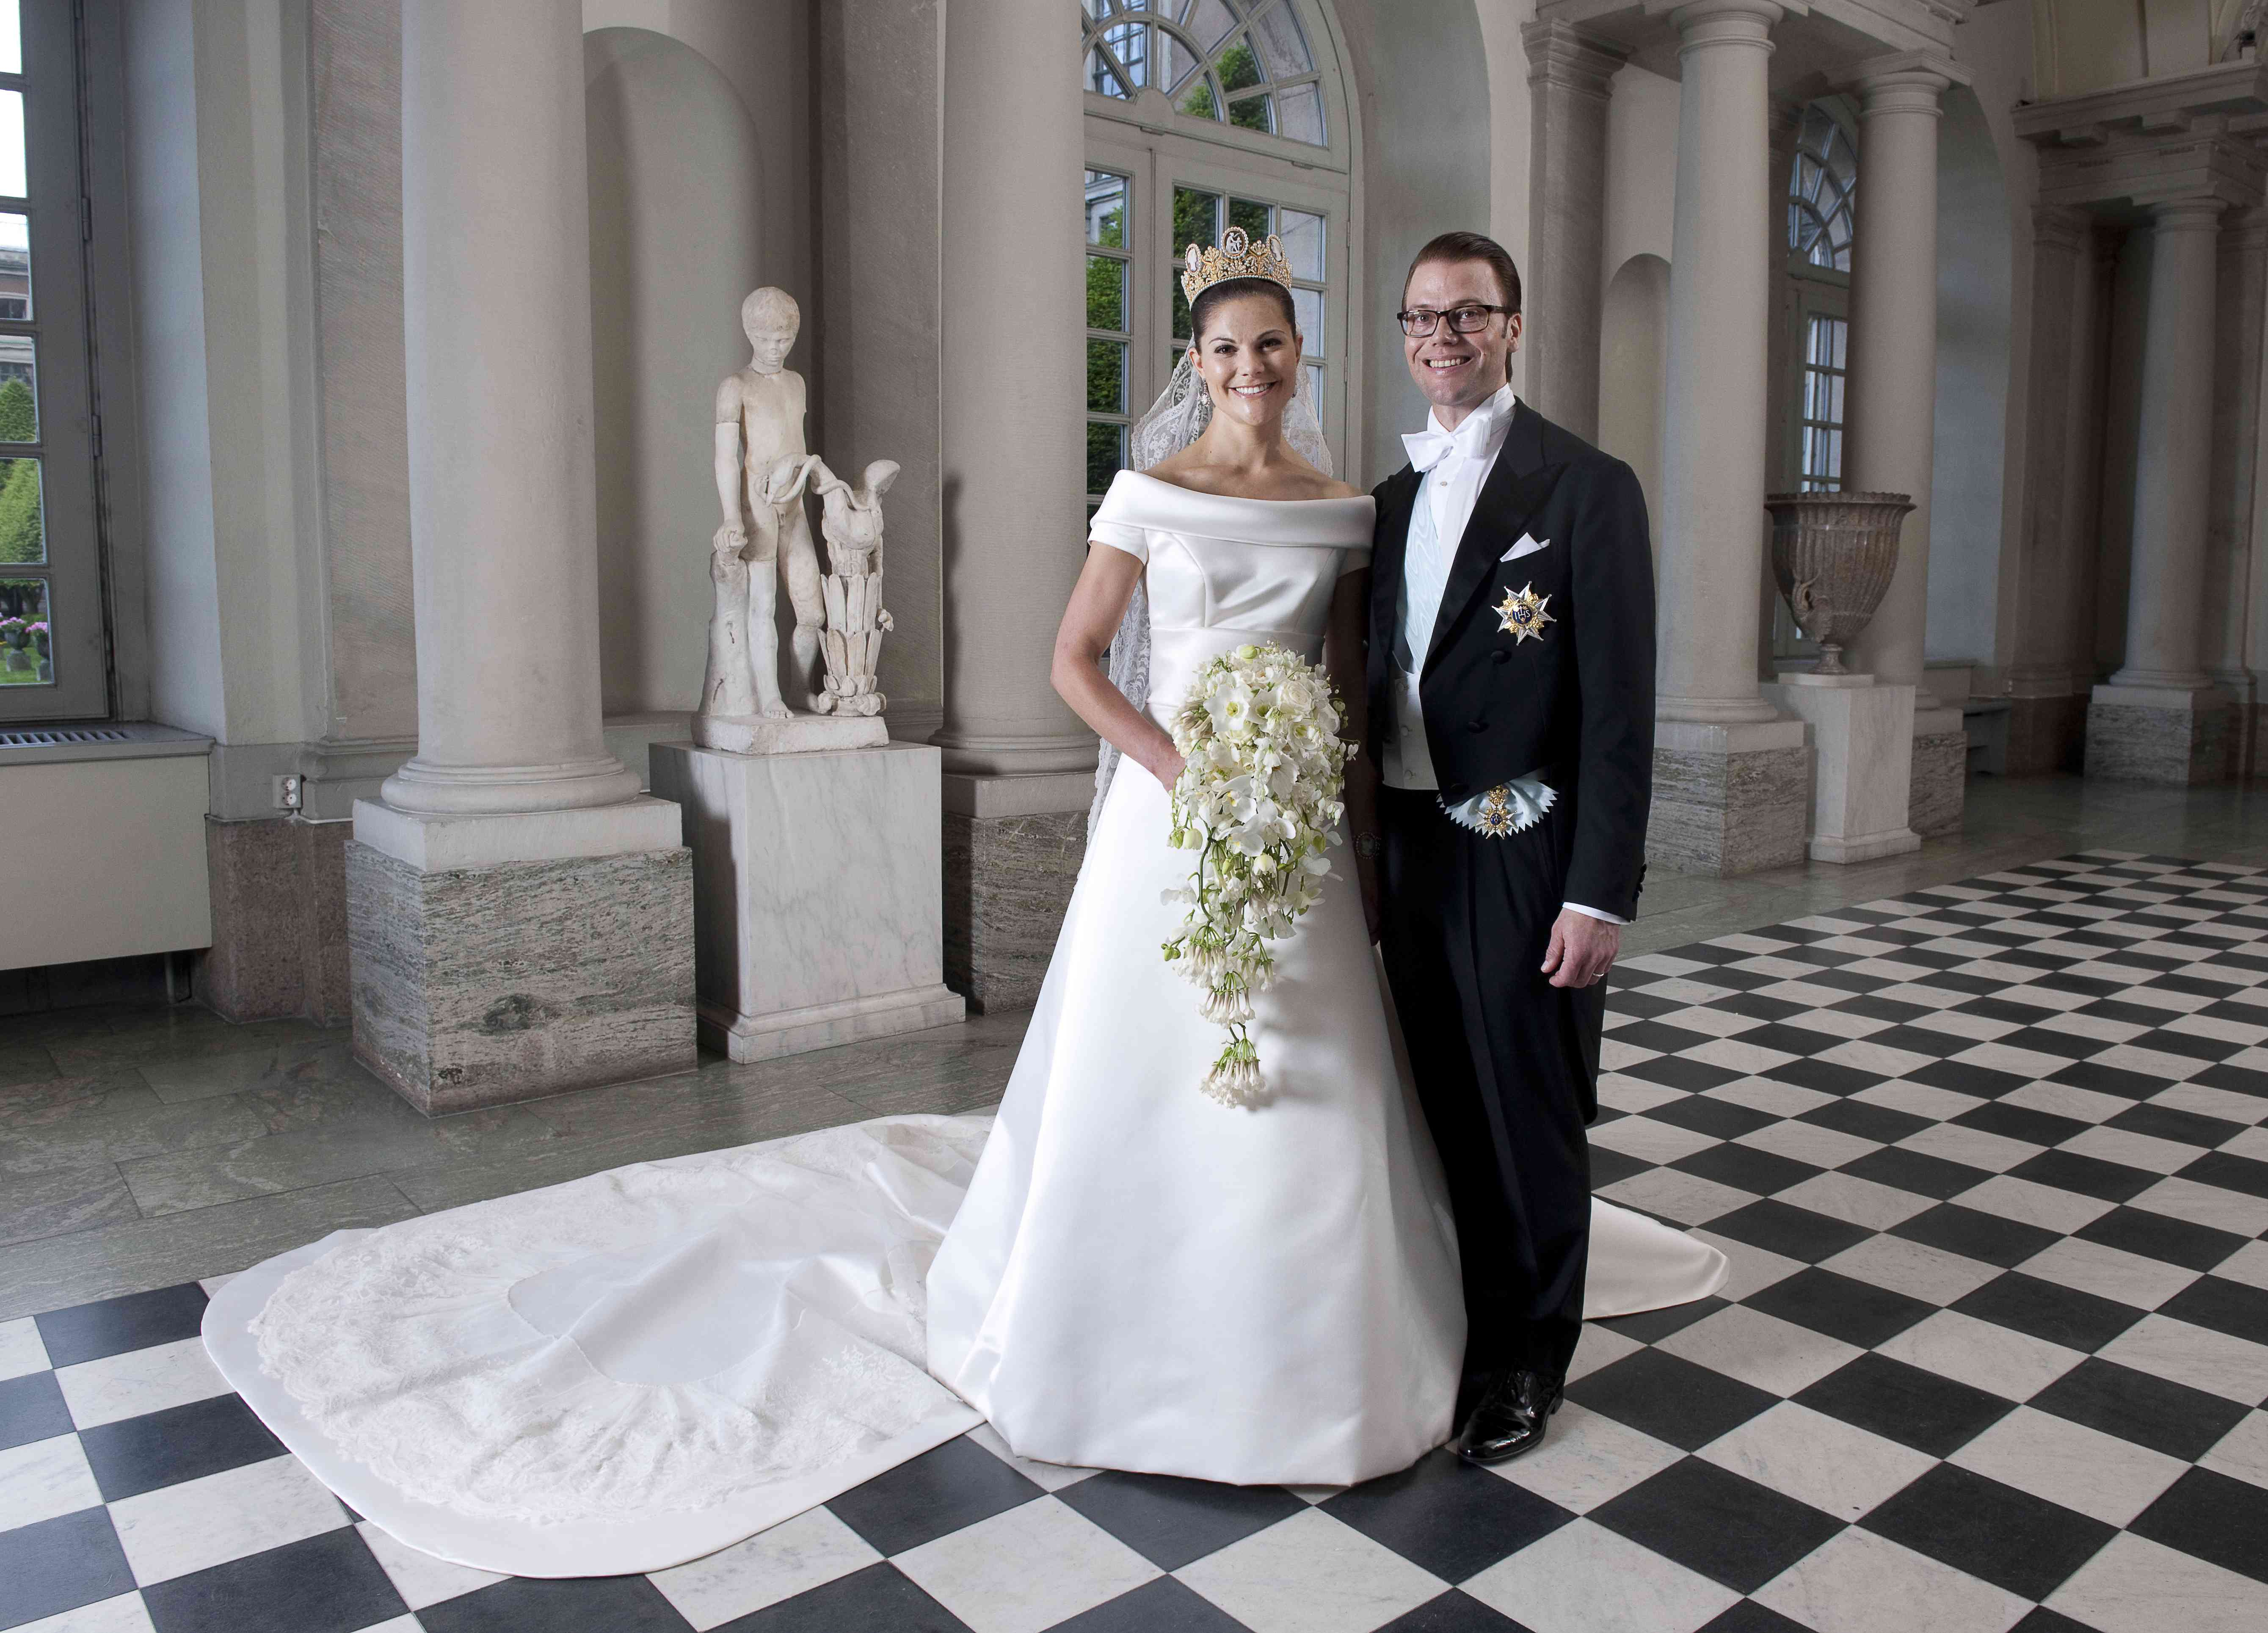 Princess Victoria of Sweden and Prince Daniel on their wedding day